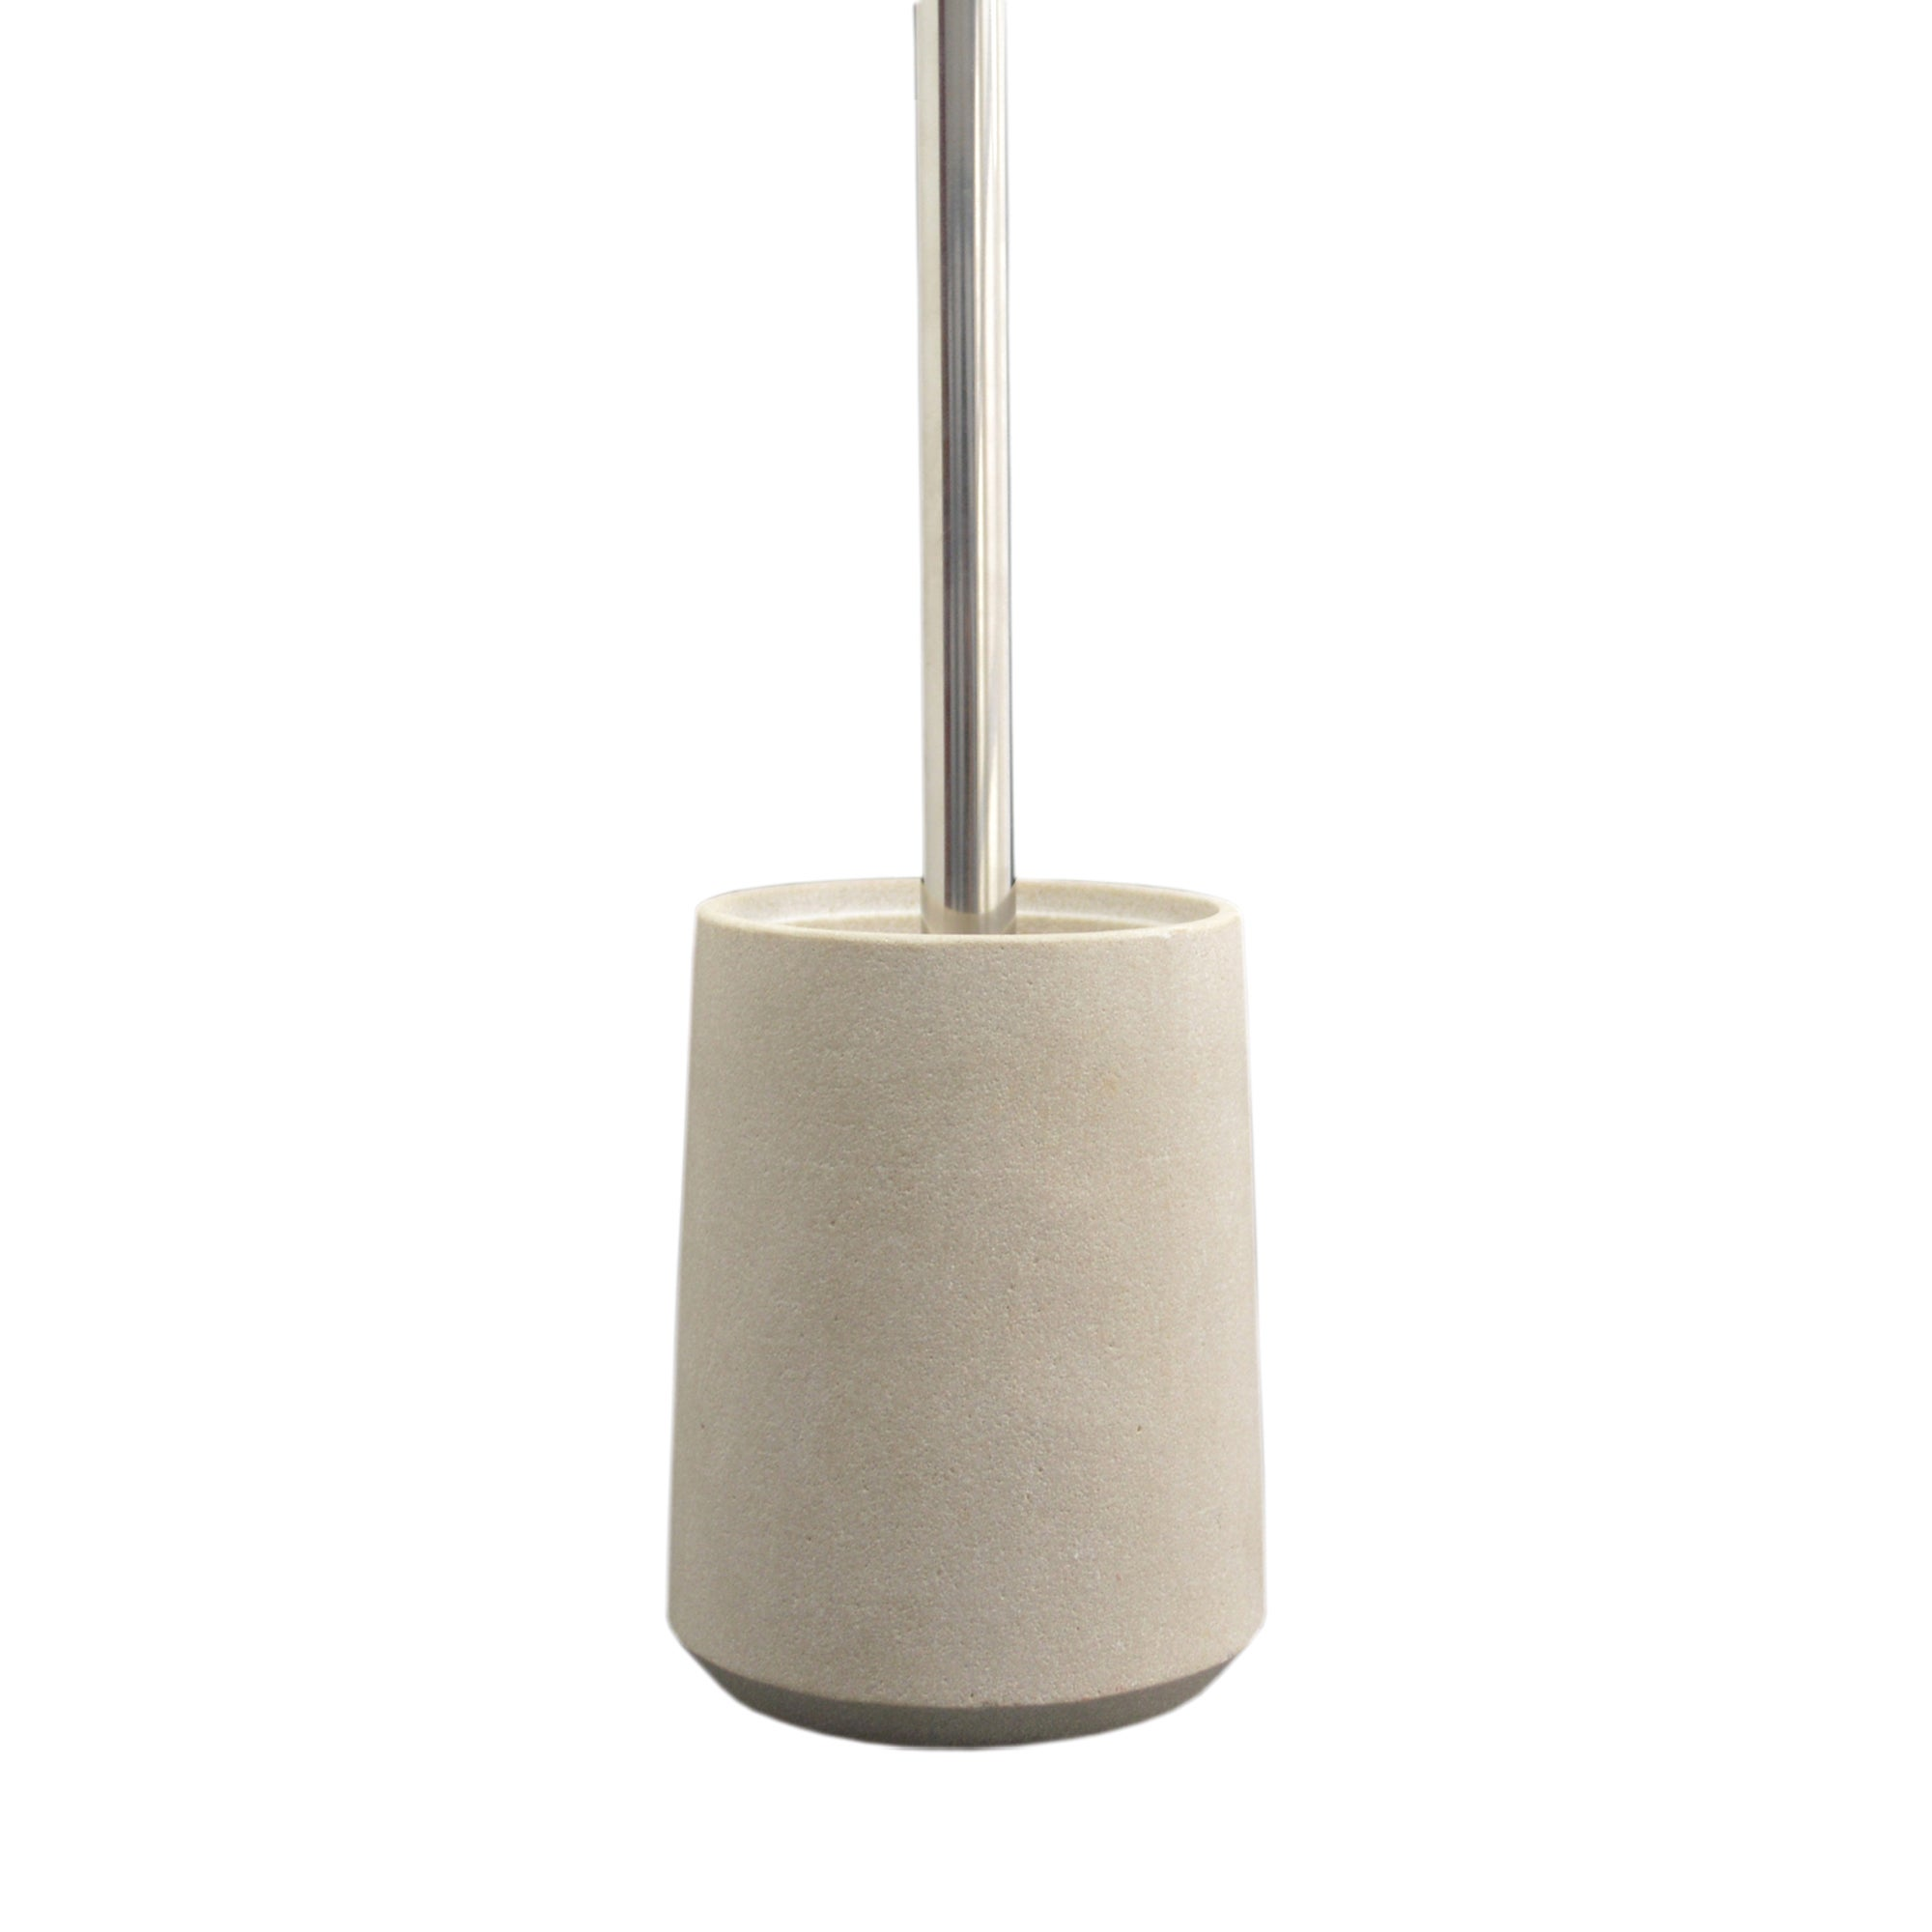 Dorma Belvedere Stone Toilet Brush Holder